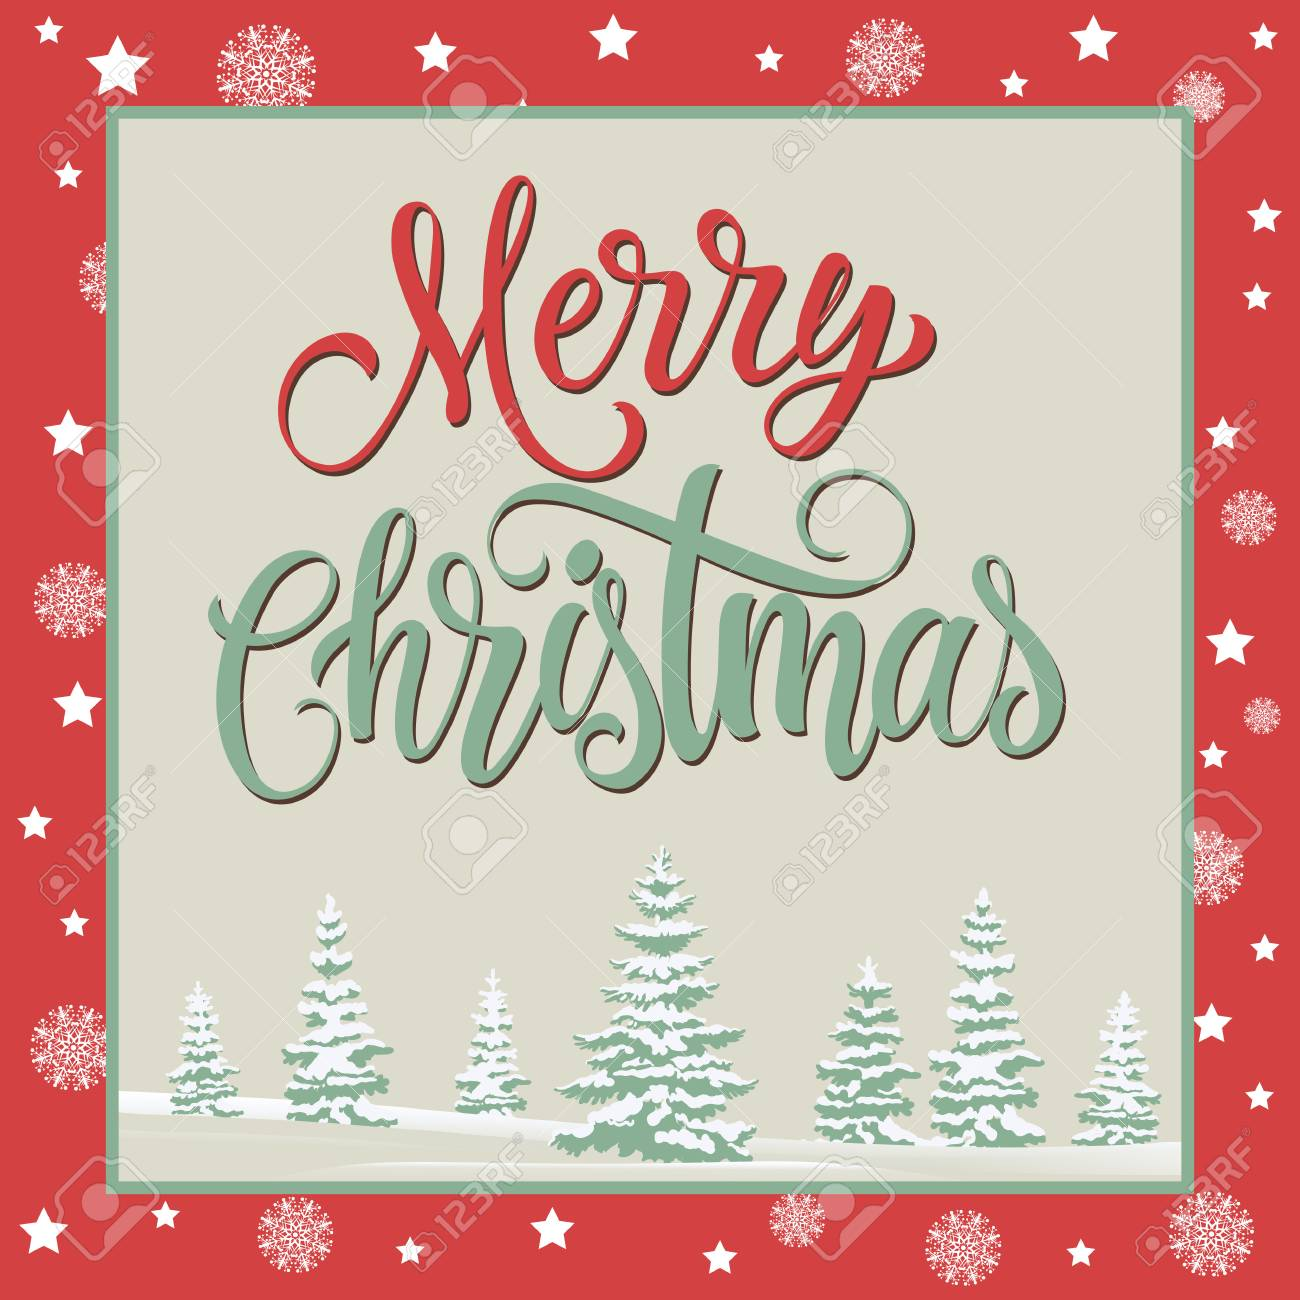 Merry Christmas Lettering In Frame. Christmas Greeting Card With ...